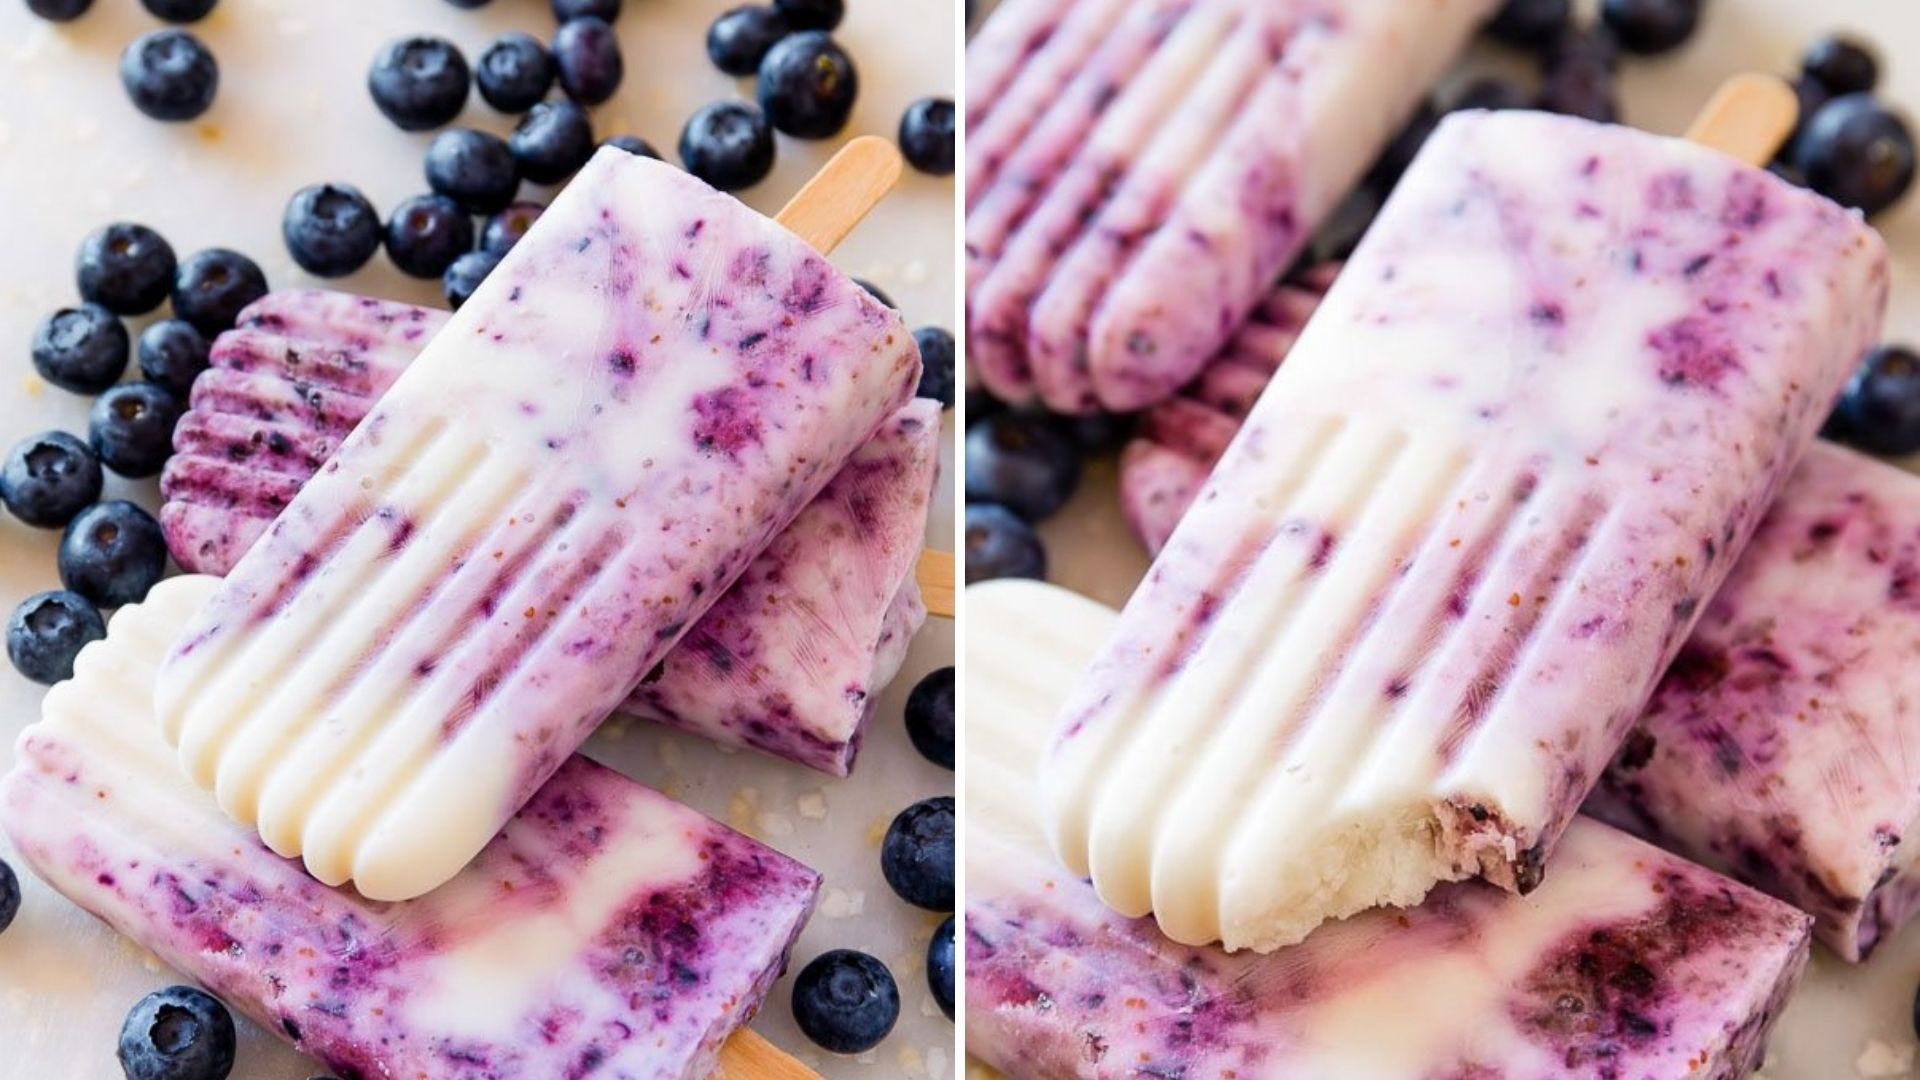 Six Blueberry swirl popsicles lying on top of scattered blueberries.